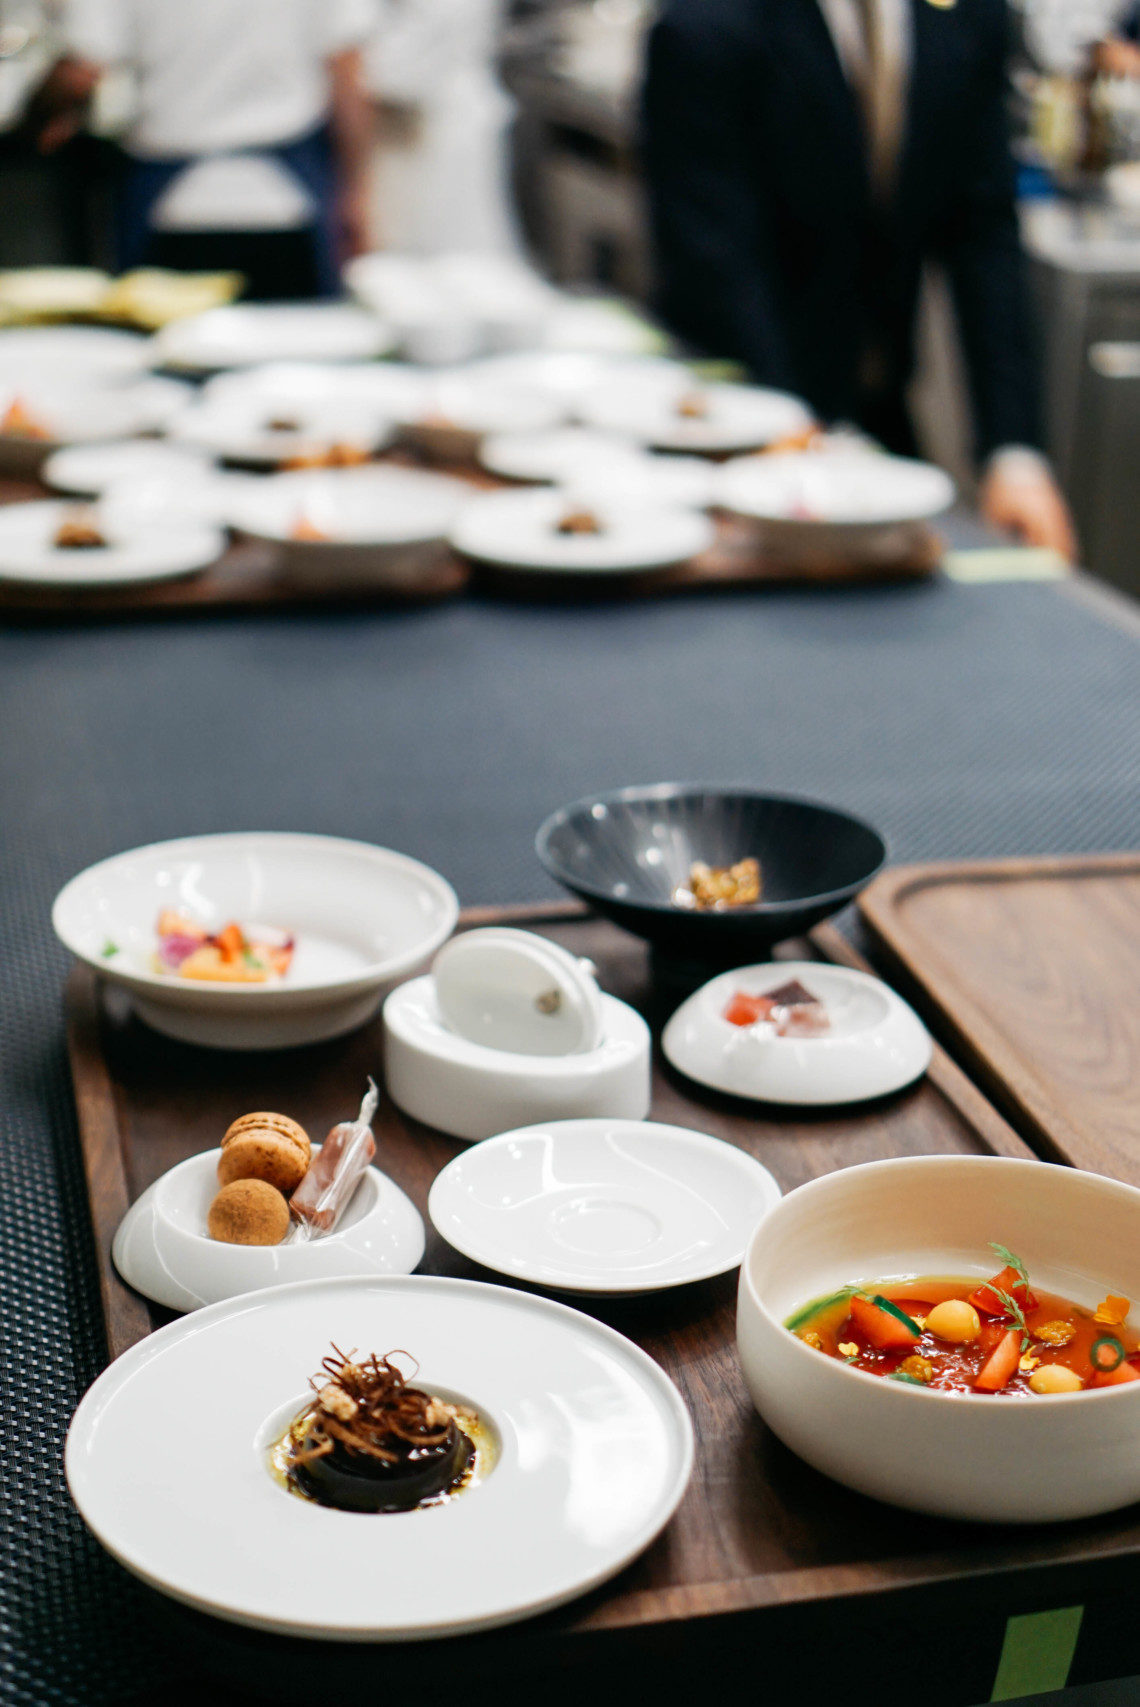 Go inside the 3-Michelin-Starred restaurant The French Laundry in Yountville.